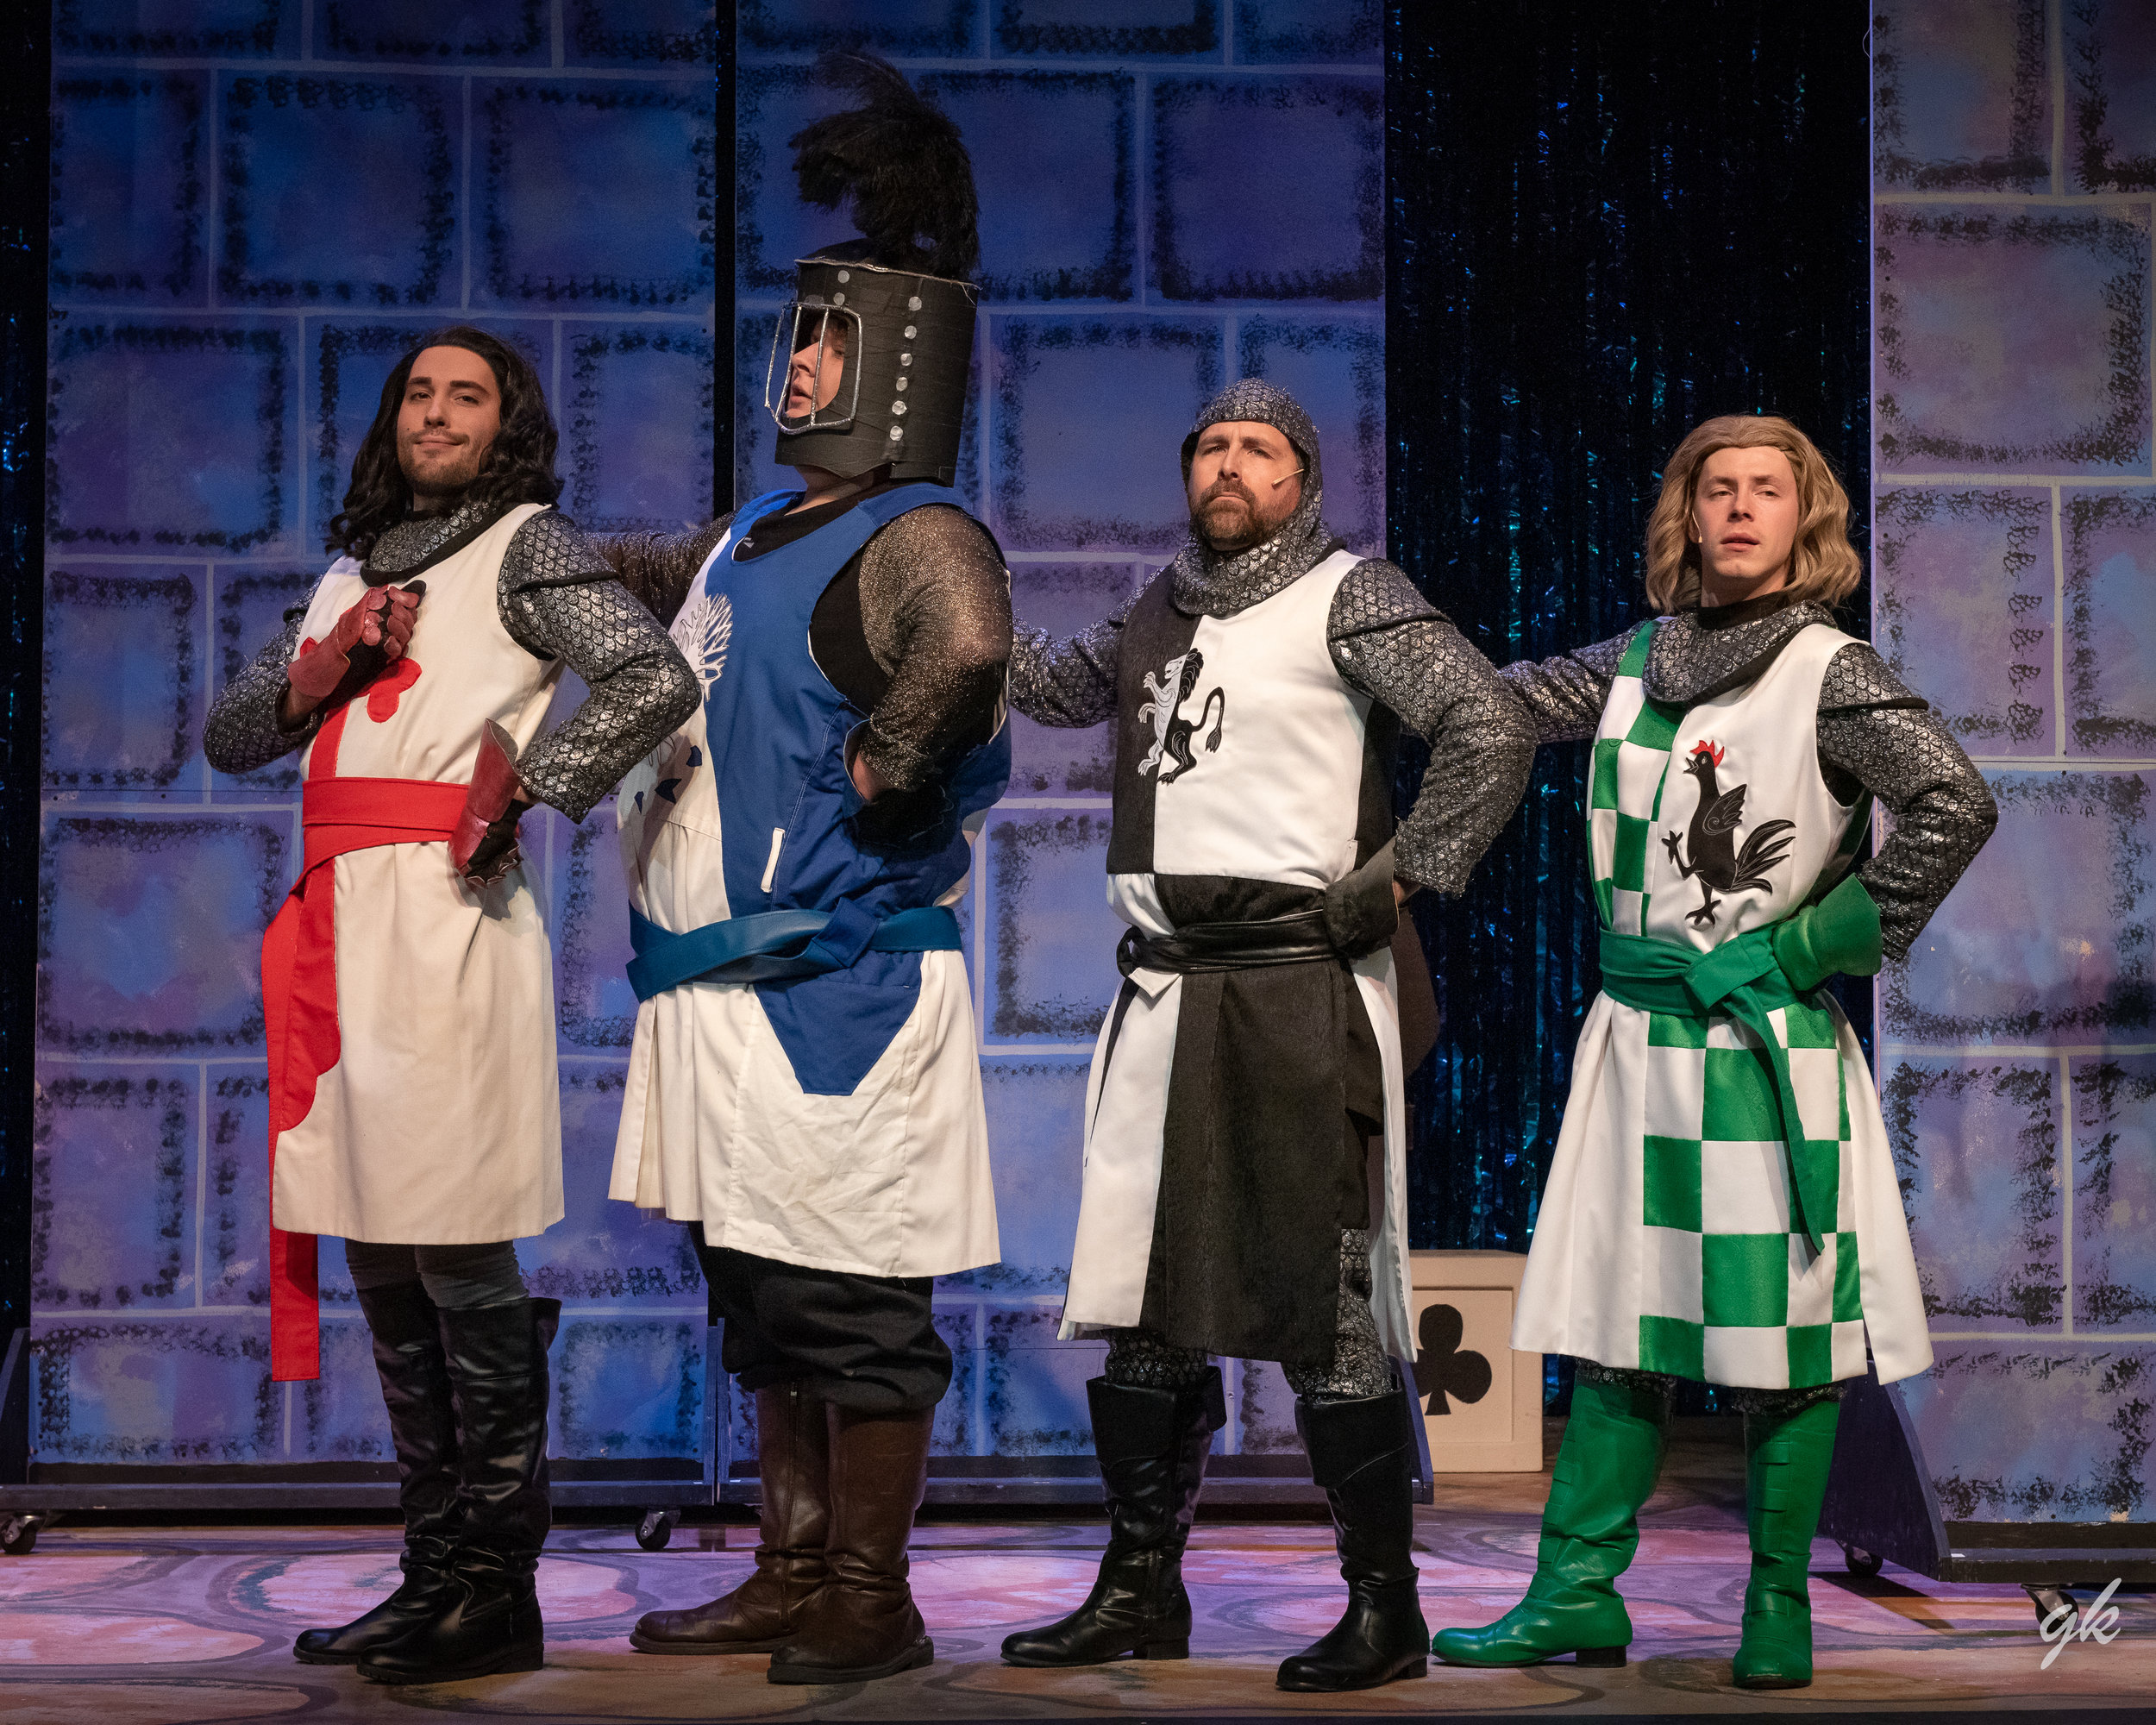 King Arthur's Knights of the Round Table — Sir Galahad (Eric Welch), Sir Bedevere (Noah Maguire), Sir Lancelot (Ted Shaw) and Sir Robin (Clayton R. Irwin) strike regal poses.